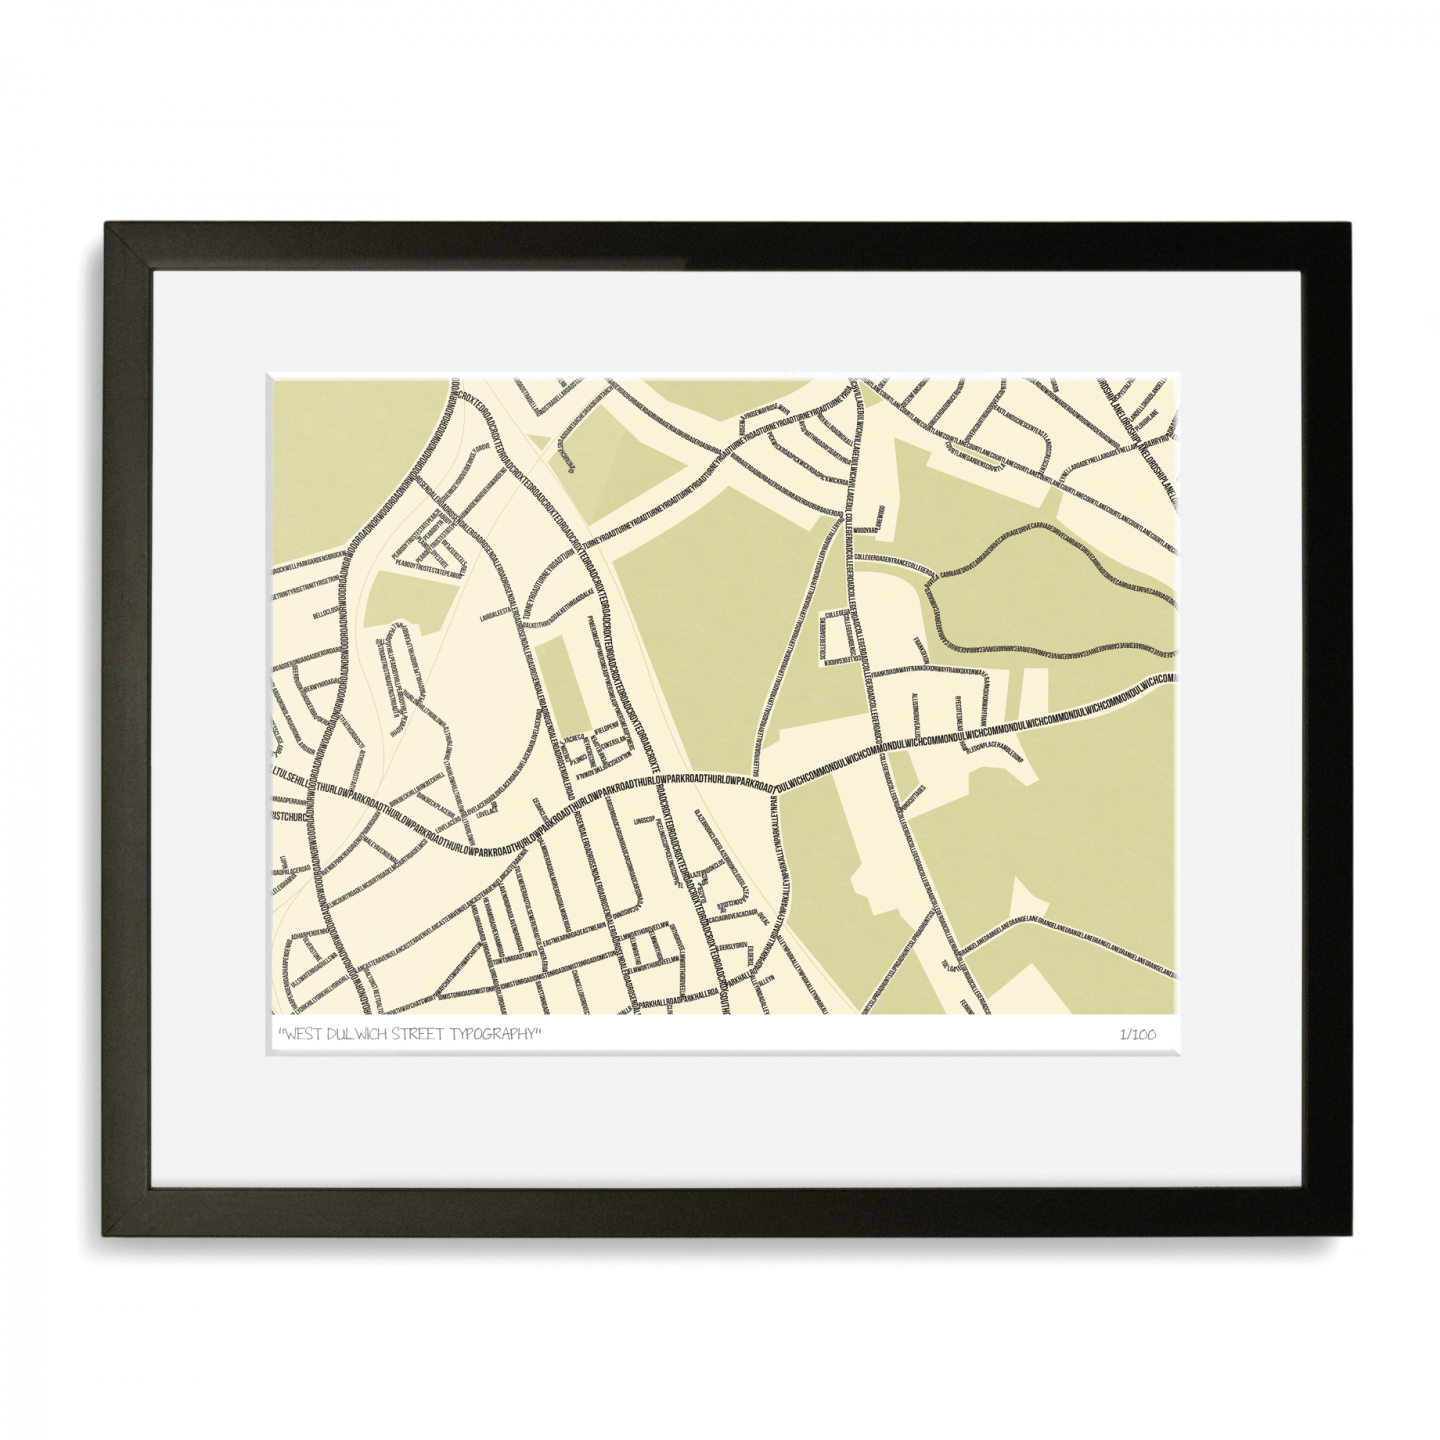 West Dulwich Street Typography Map Art Poster Print